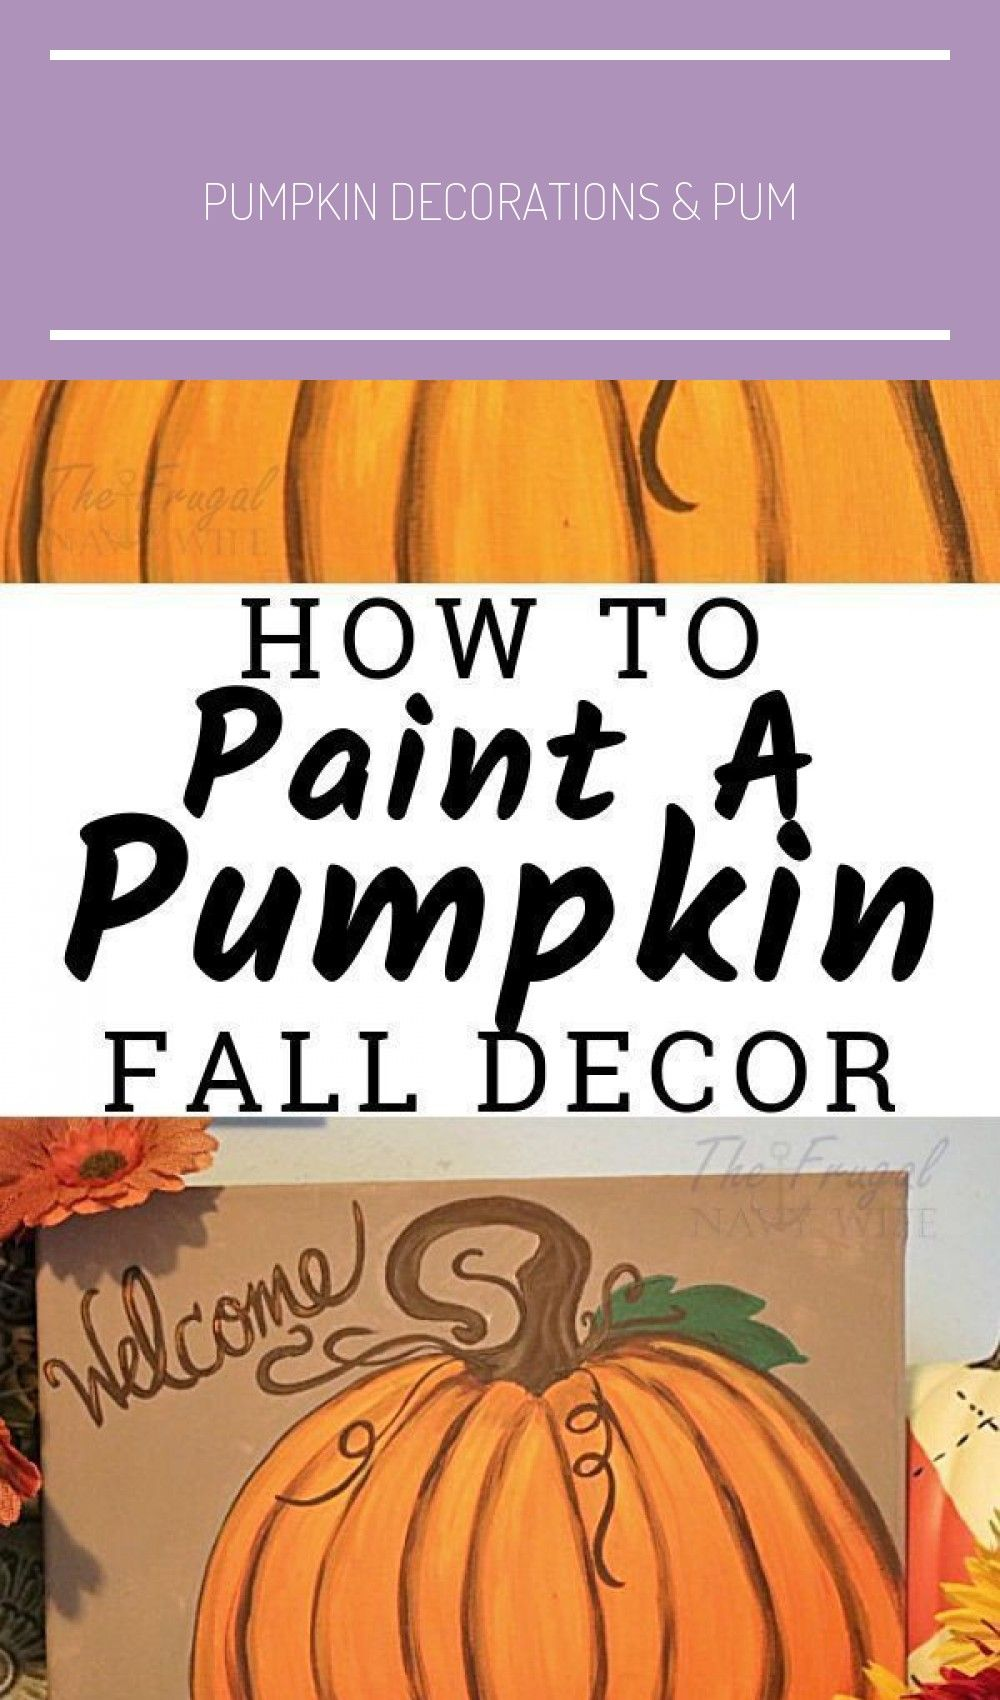 Pumpkin Decorations & Pumpkin Painting - How to Paint a Pumpkin #pumpkinpaintingideascreative This makes tutorial makes painting a pumpkin SOO easy even *I* can do it! Wow going to let me kids try it too!   #FrugalNavyWife #PumpkinPainting #FallDecor  Paint a Pumpkin | Paint a Pumpkin on Canvas | Paint a Pumpkin on Wood | Paint a Pumpkin Kids | Pumpkin Painting on Canvas |Pumpkin Painting Ideas Fall | Pumpkin Painting Ideas Canvases | Pumpkin Painting for Kids #pumpkinpaintingideasforkids Pumpki #pumpkinpaintingideascreative